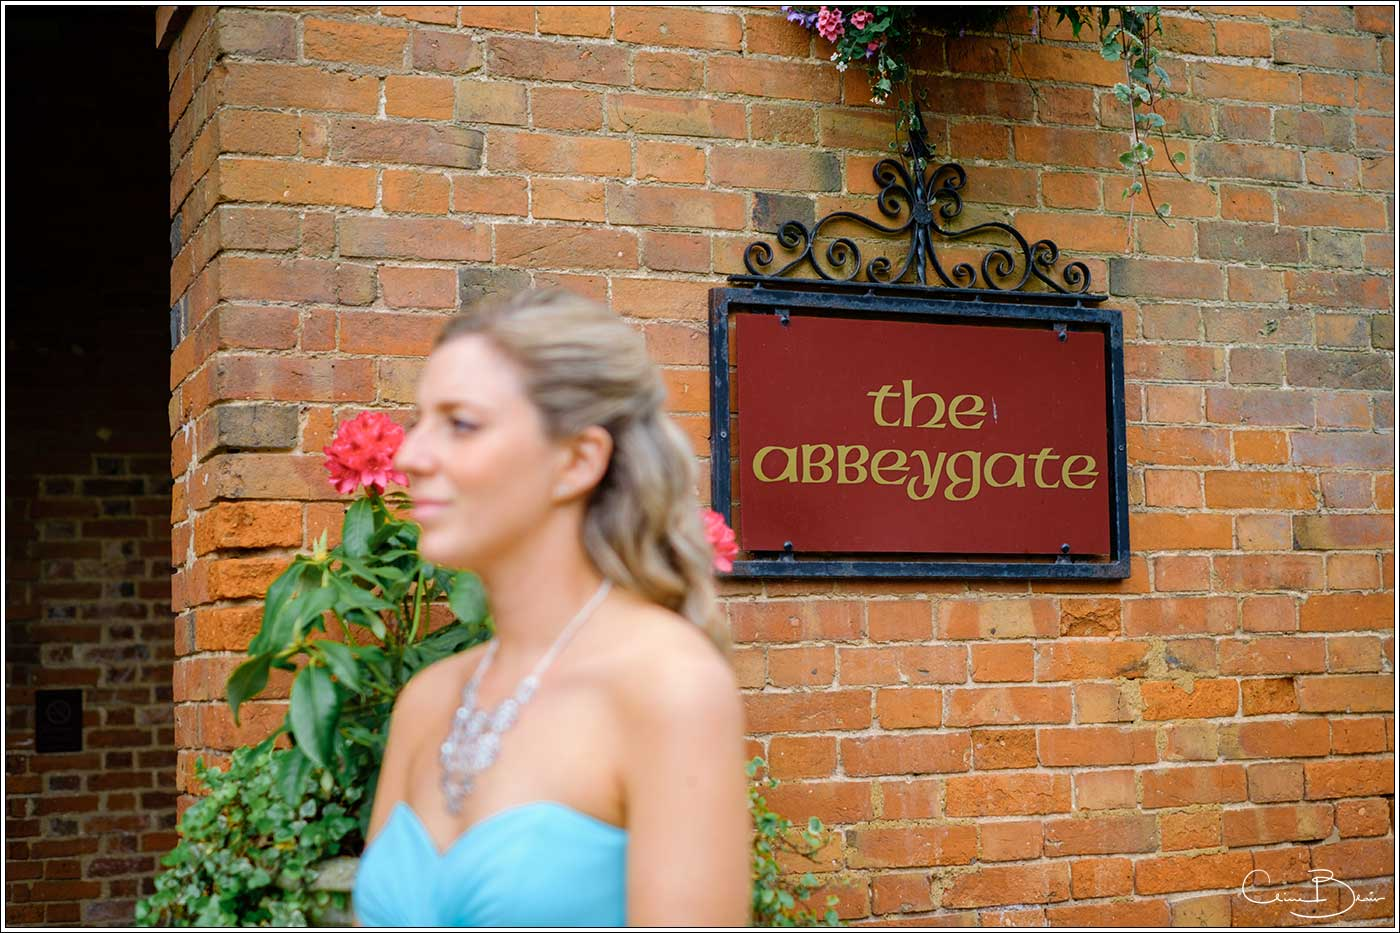 Coombe Abbey wedding photography showing The Abbeygate sign